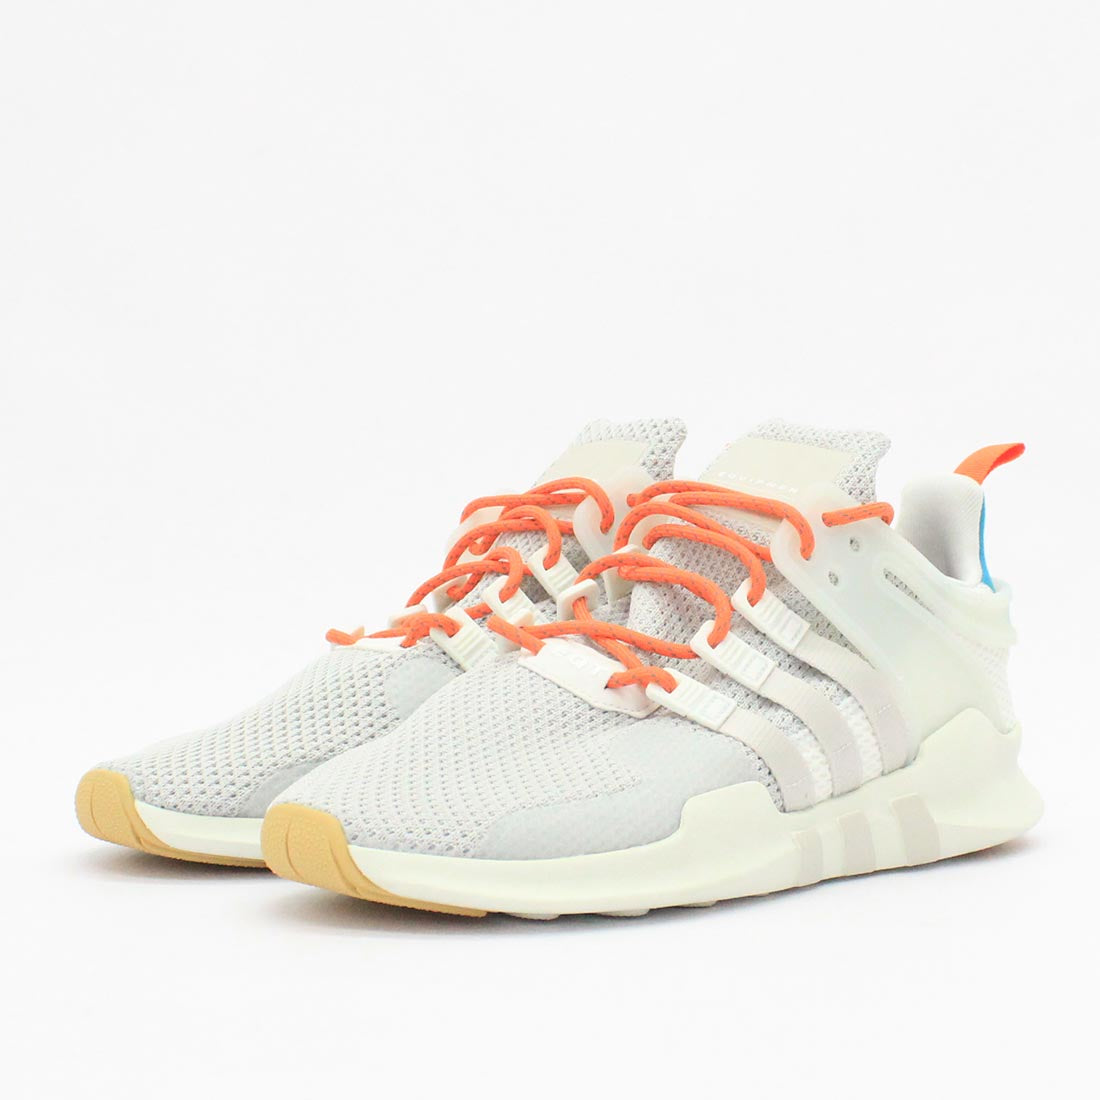 Adidas Originals EQT Support ADV Summer White CQ3042